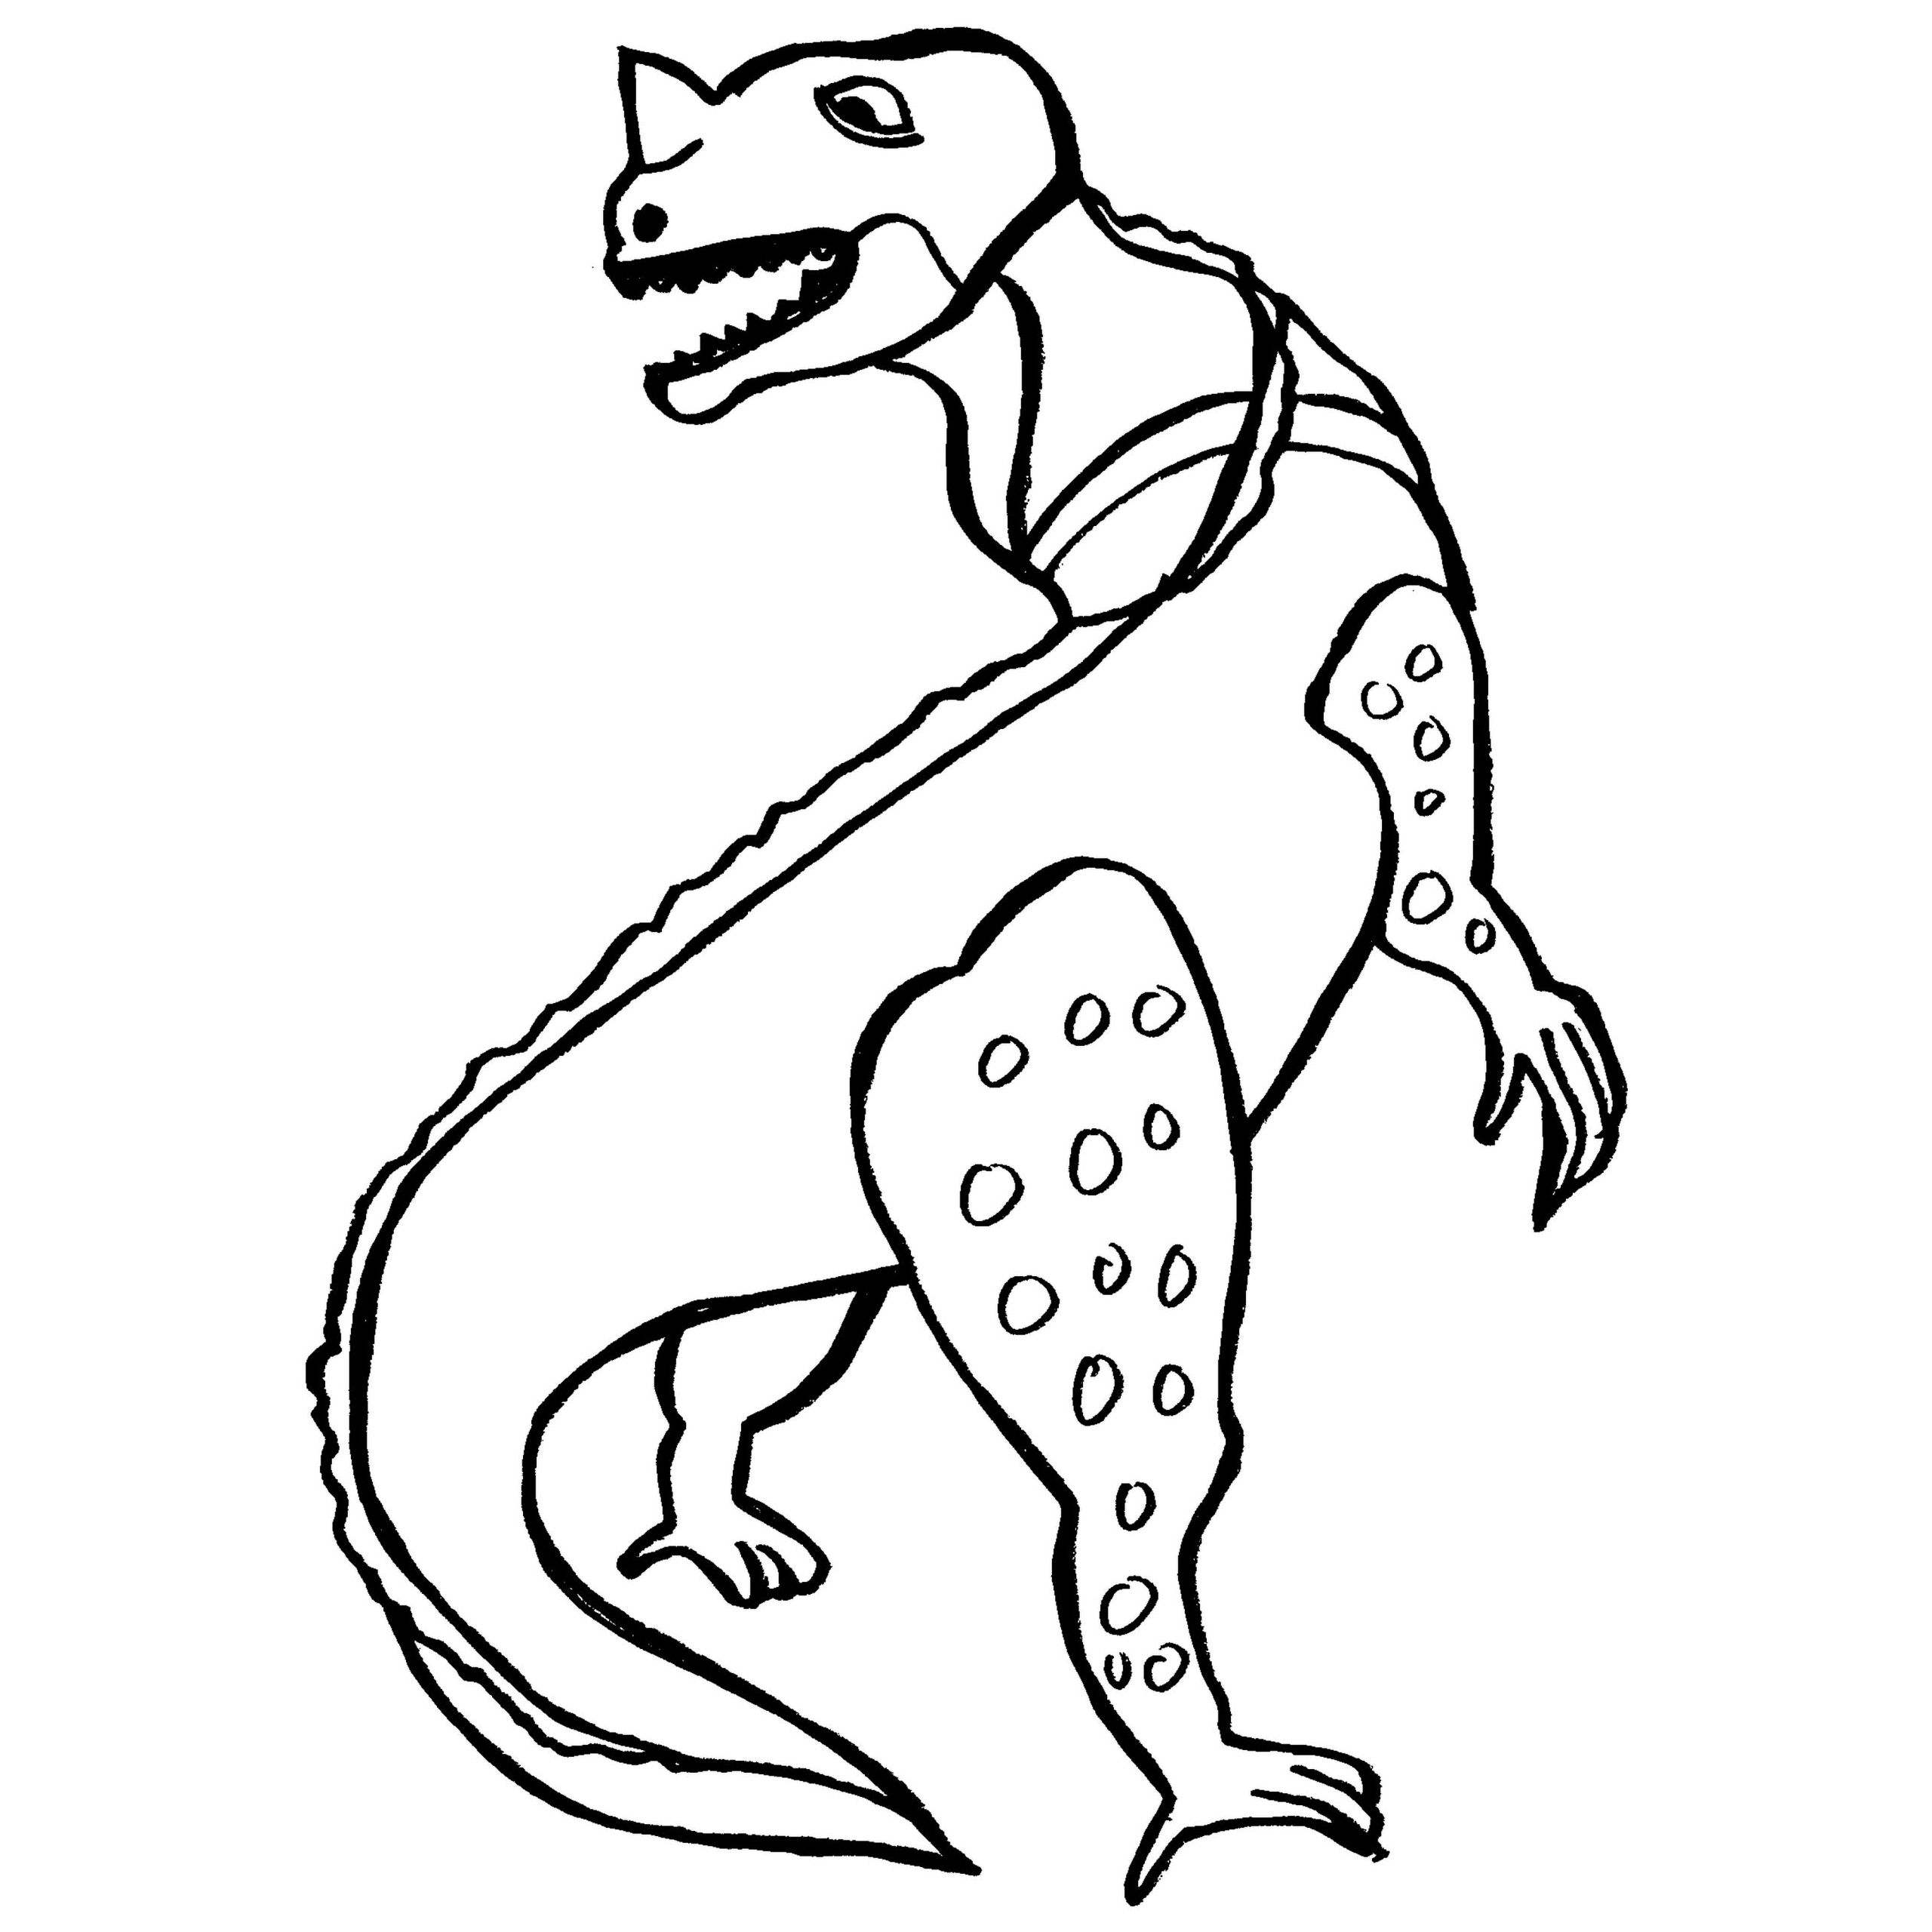 ceratosaurus coloring pages ceratosaurus coloring pages at getdrawings free download ceratosaurus coloring pages